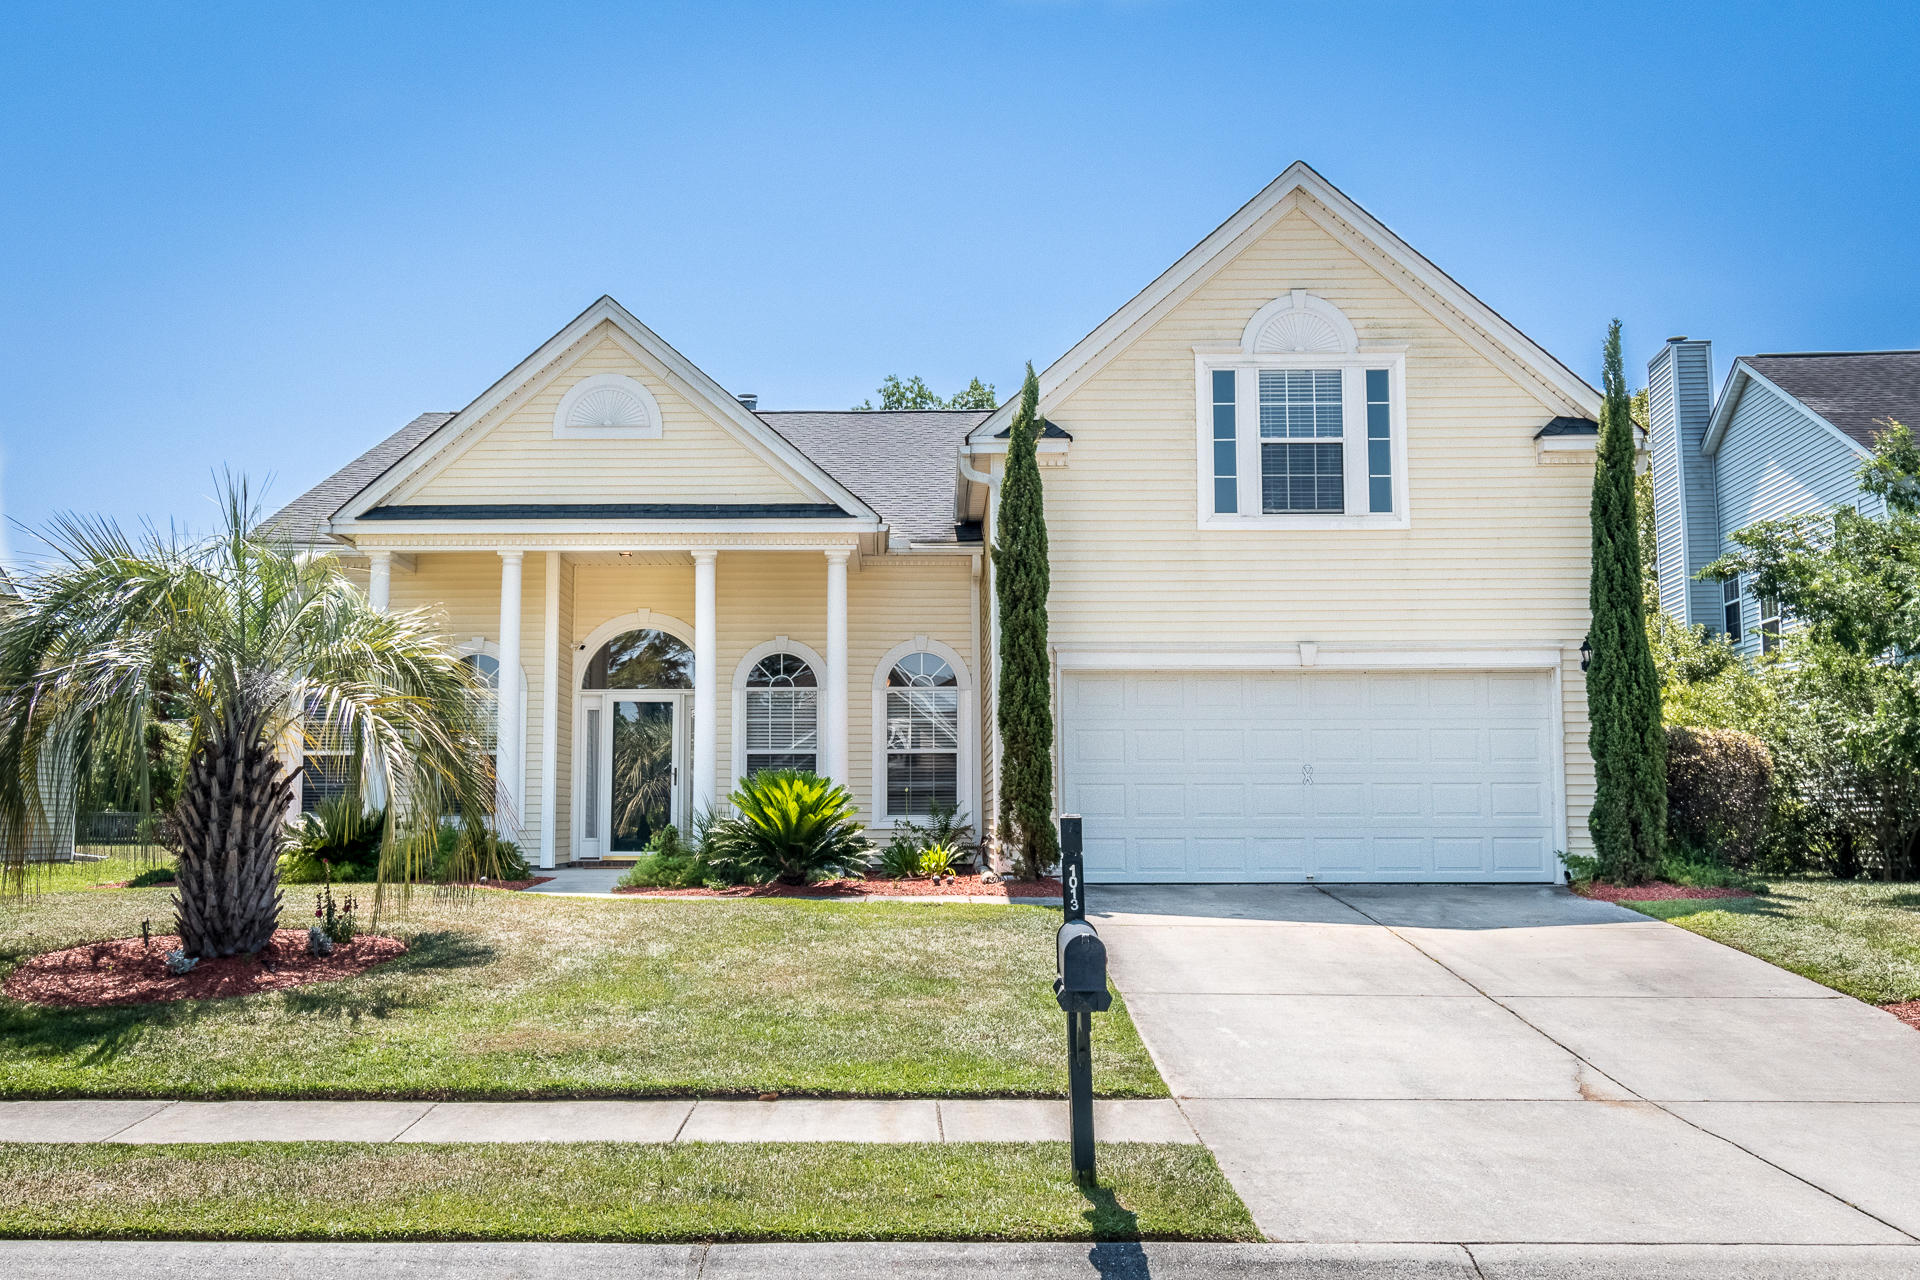 Grand Oaks, West Ashley, Homes for Sale - Charleston SC